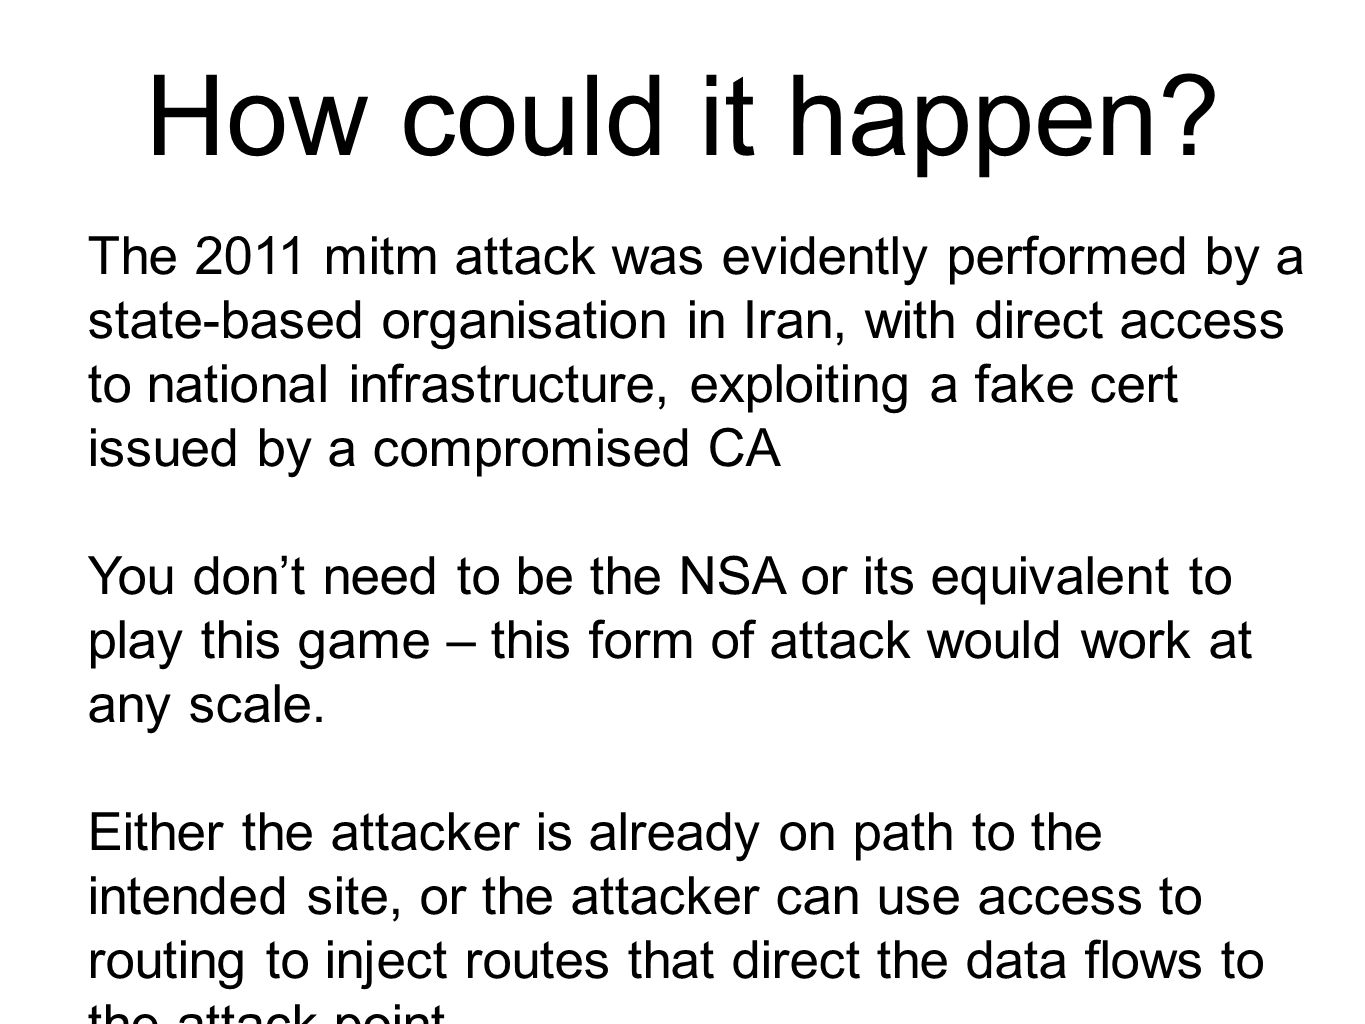 The 2011 mitm attack was evidently performed by a state-based organisation in Iran, with direct access to national infrastructure, exploiting a fake c